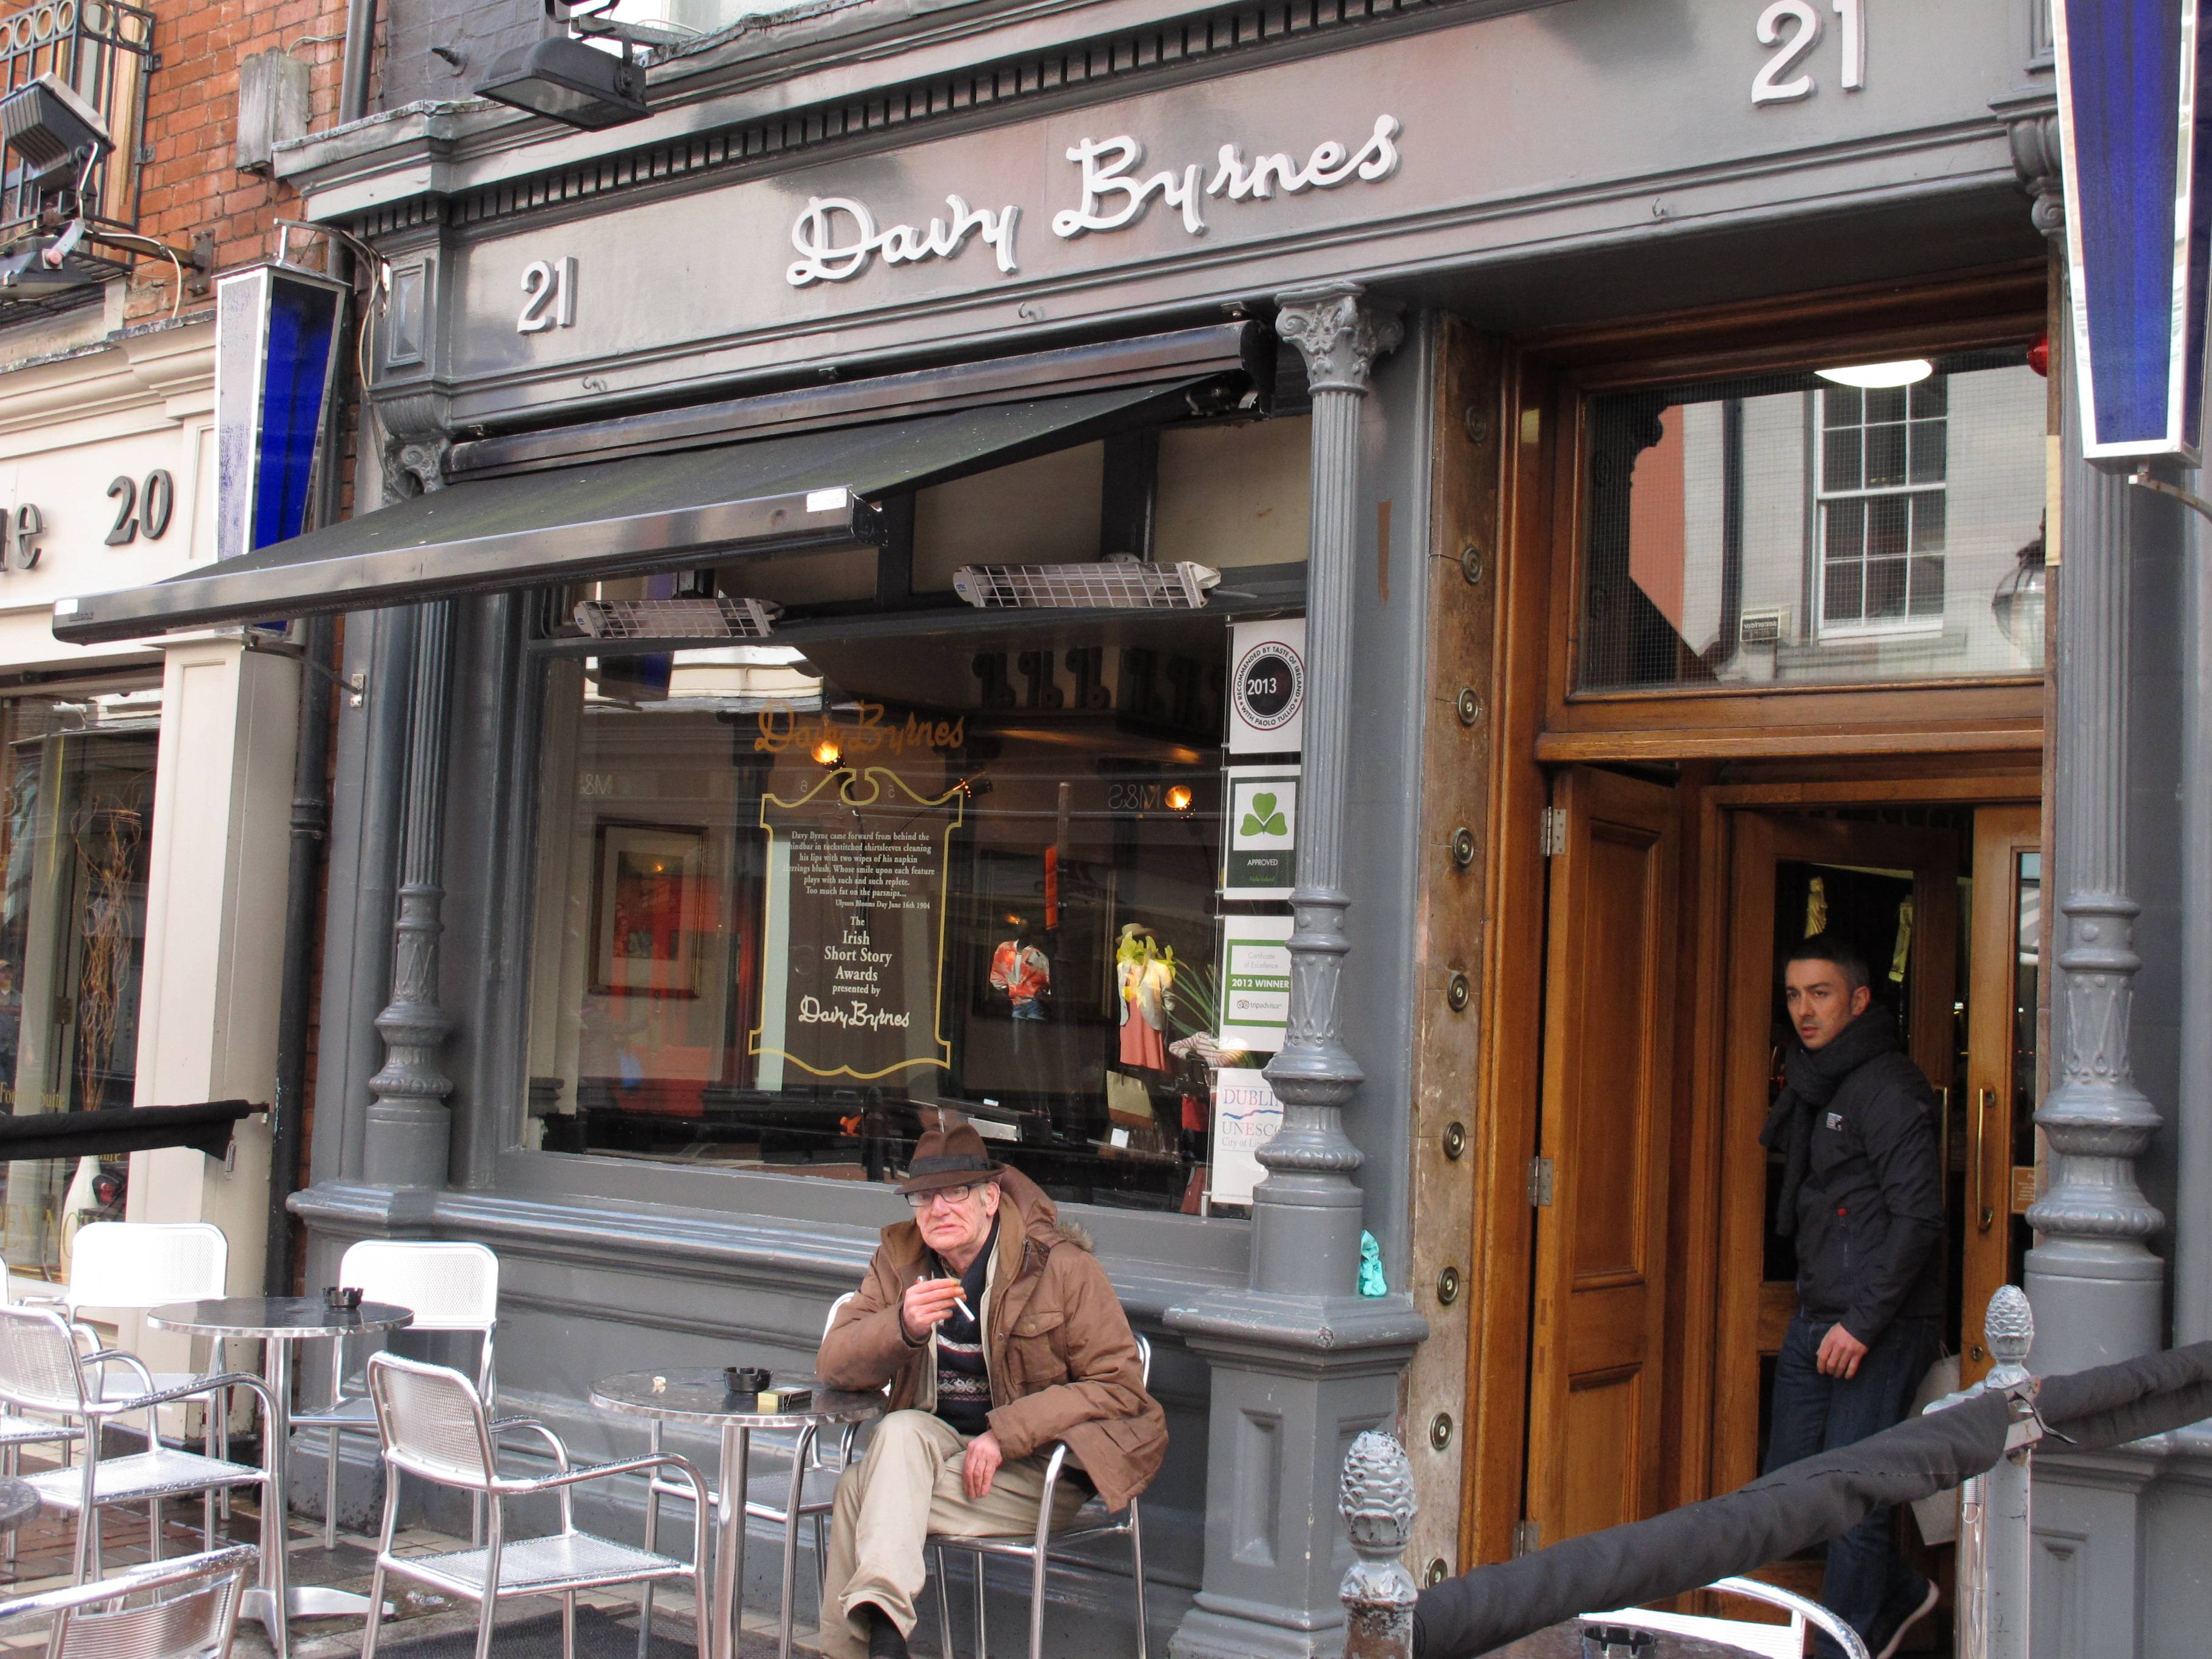 "Davy Byrne's pub in Dublin was famously mentioned in James Joyces' ""Ulysses"" when the protagonist of the novel, Leopold Bloom, ate lunch there. Every year on Bloomsday (June 16), Joyce lovers descend on the pub for that famous literary lunch: a Gorgonzola sandwich and a glass of Burgundy."